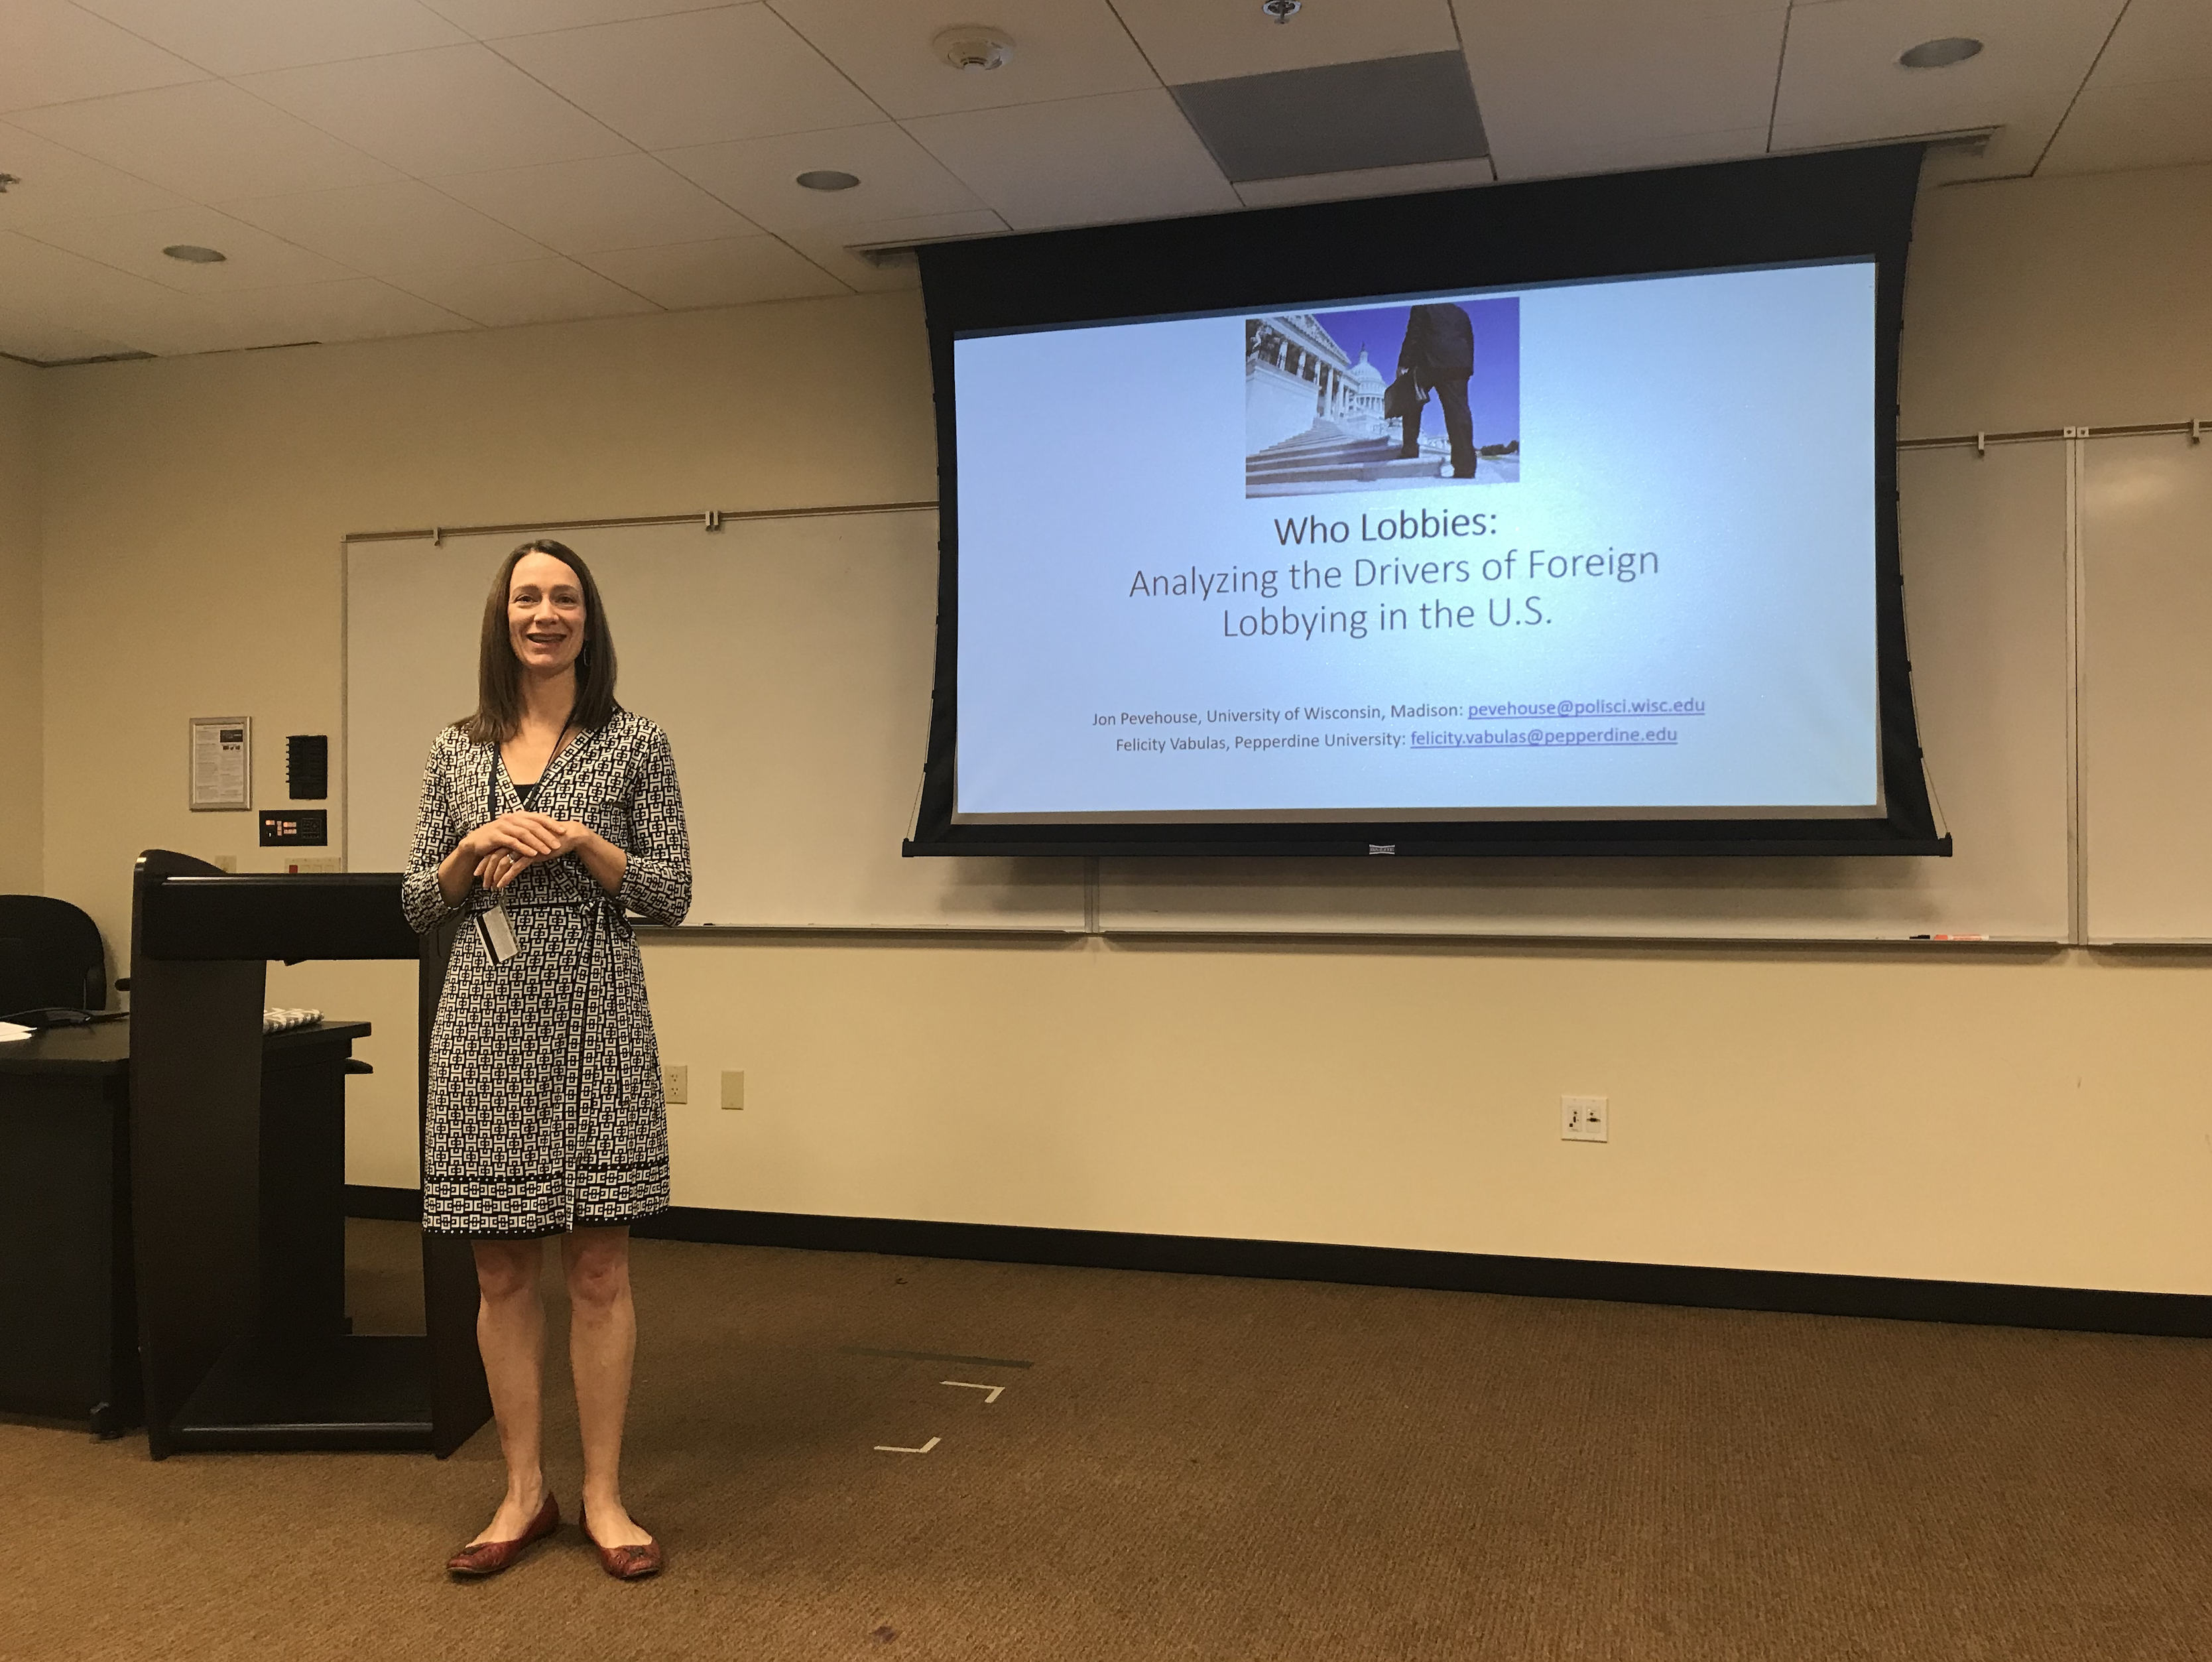 Dr. Vabulas presenting her research in a Pepperdine classroom